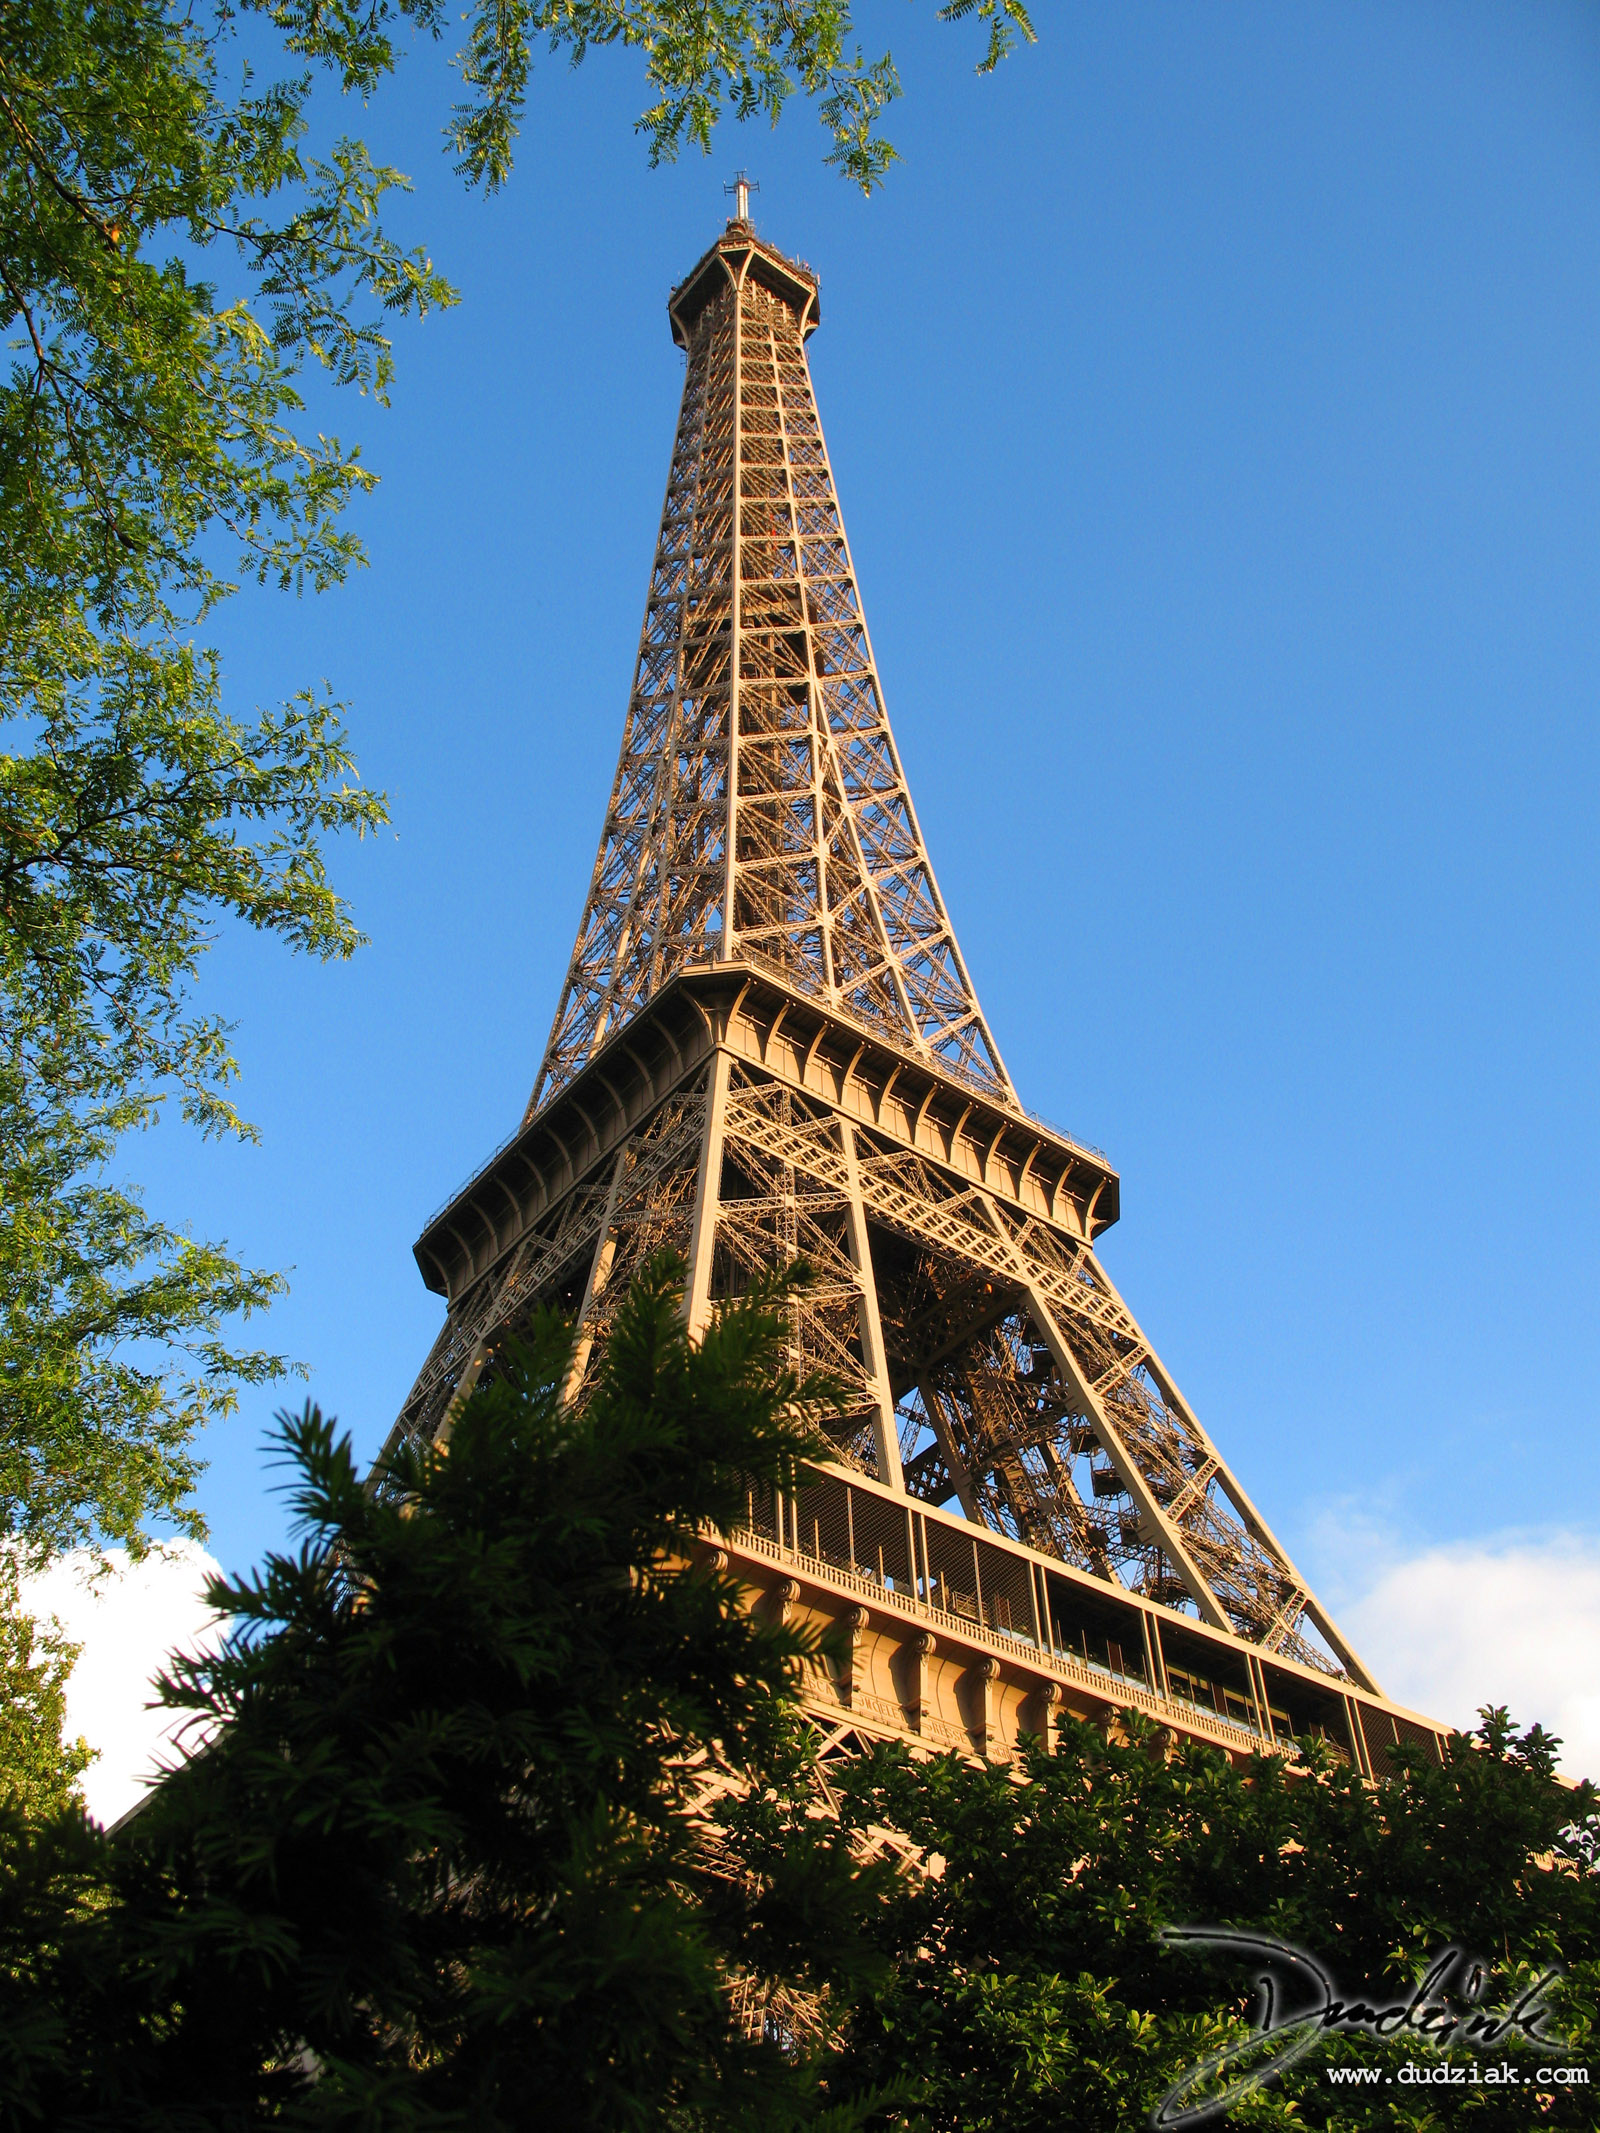 Trees,  Tour Eiffel,  Eiffel Tower,  Blue Sky